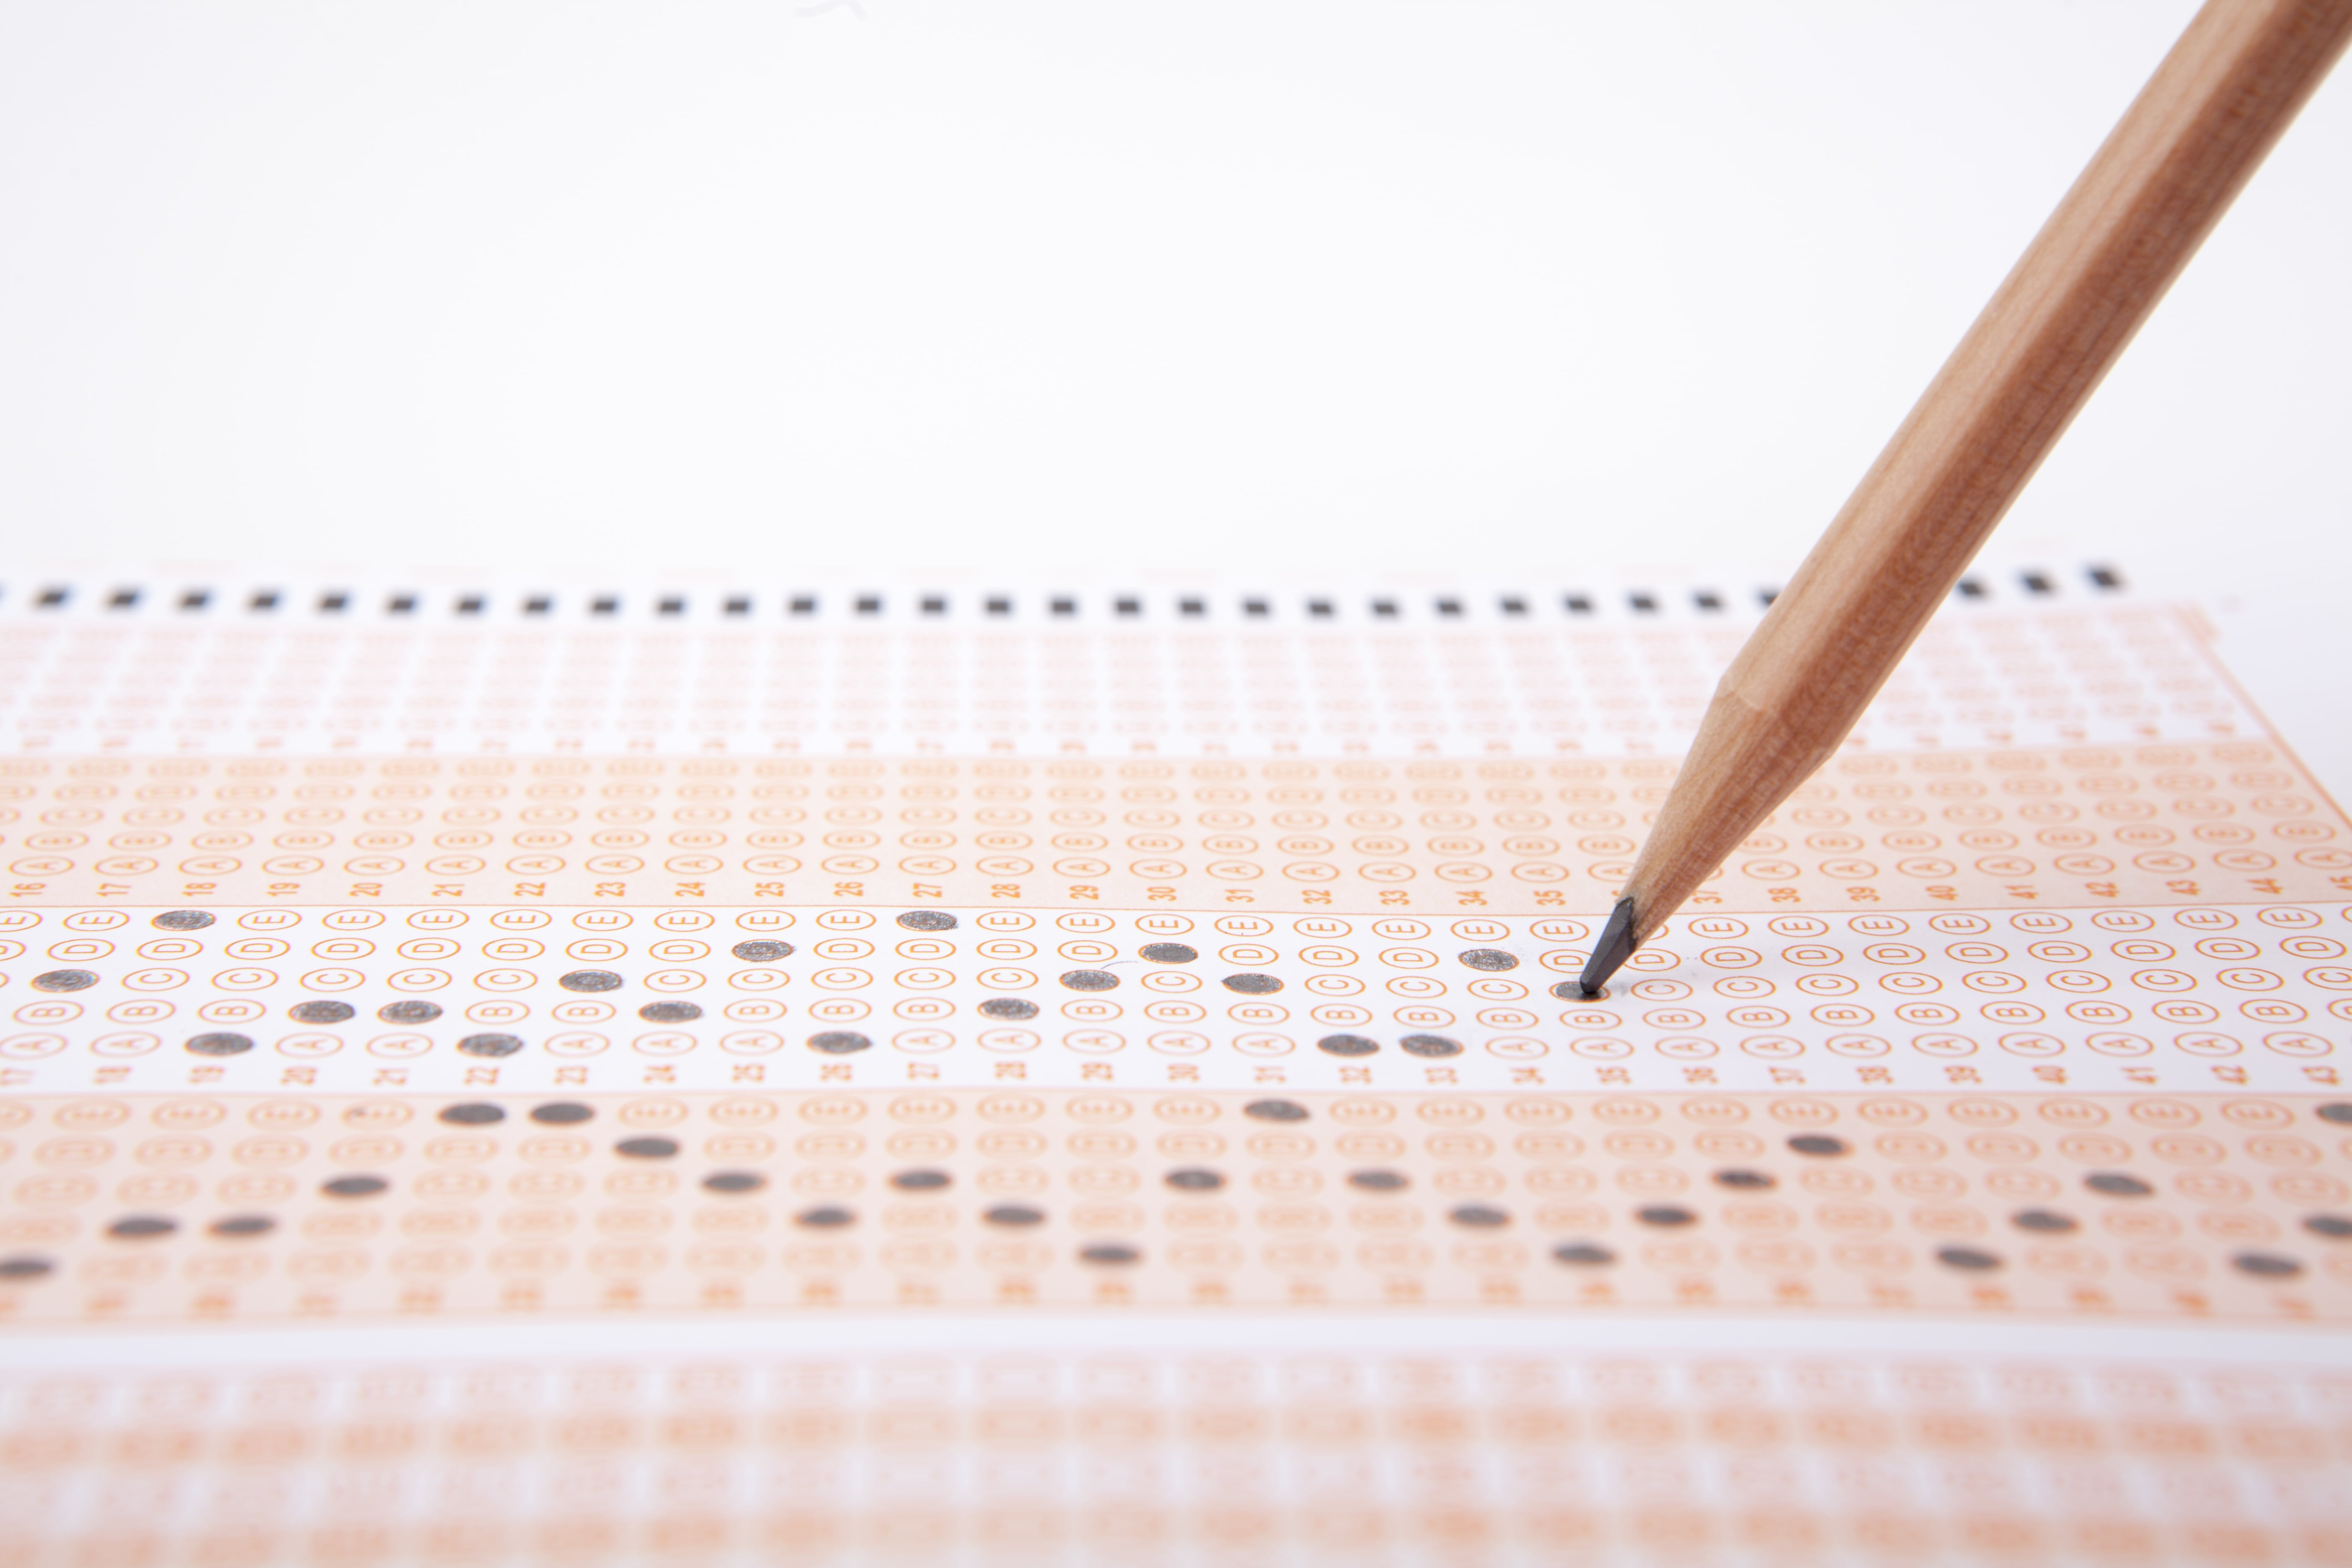 Picture of a scantron